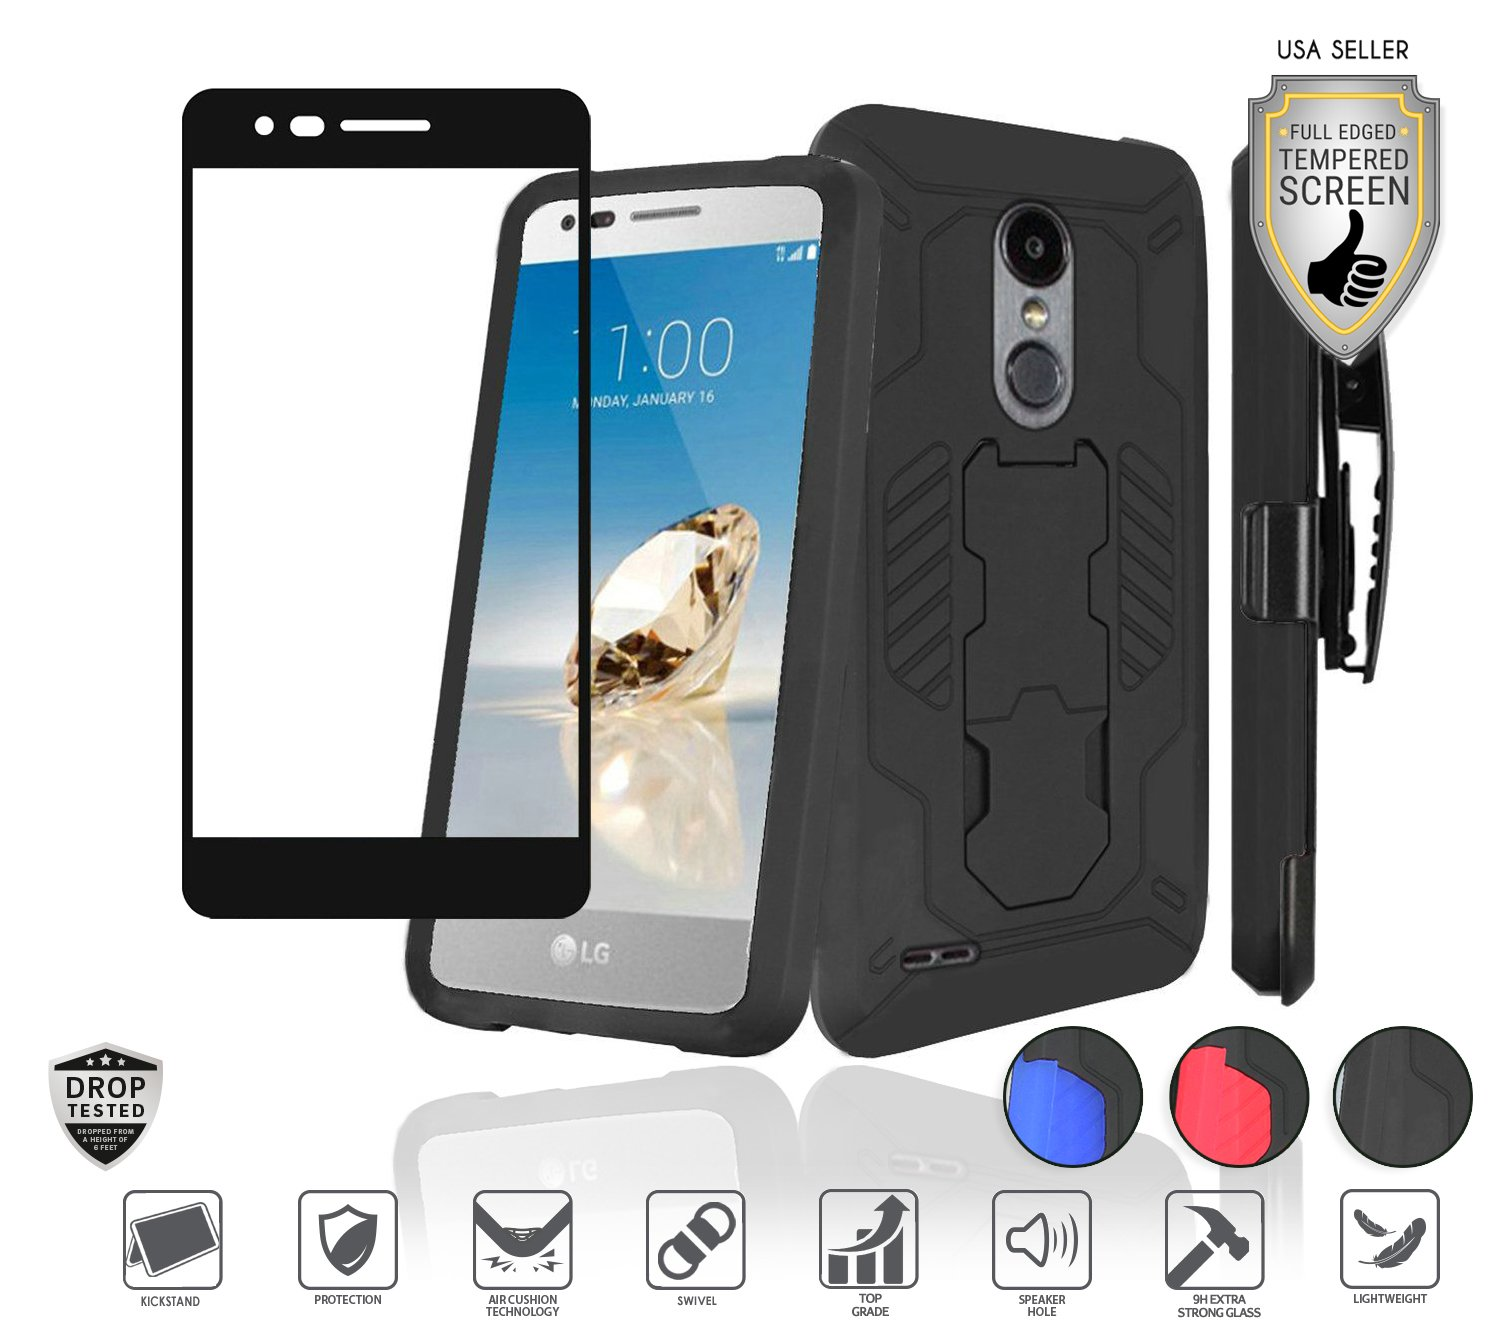 Compatible for LG Aristo 3 Plus/3/2,Fortune 2,K8,Phoenix 4,Rebel 3/4,Risio 3,Tribute Empire, Zone 4 Case with Tempered Glass, Holster Clip Combo Stand (Black/Black)